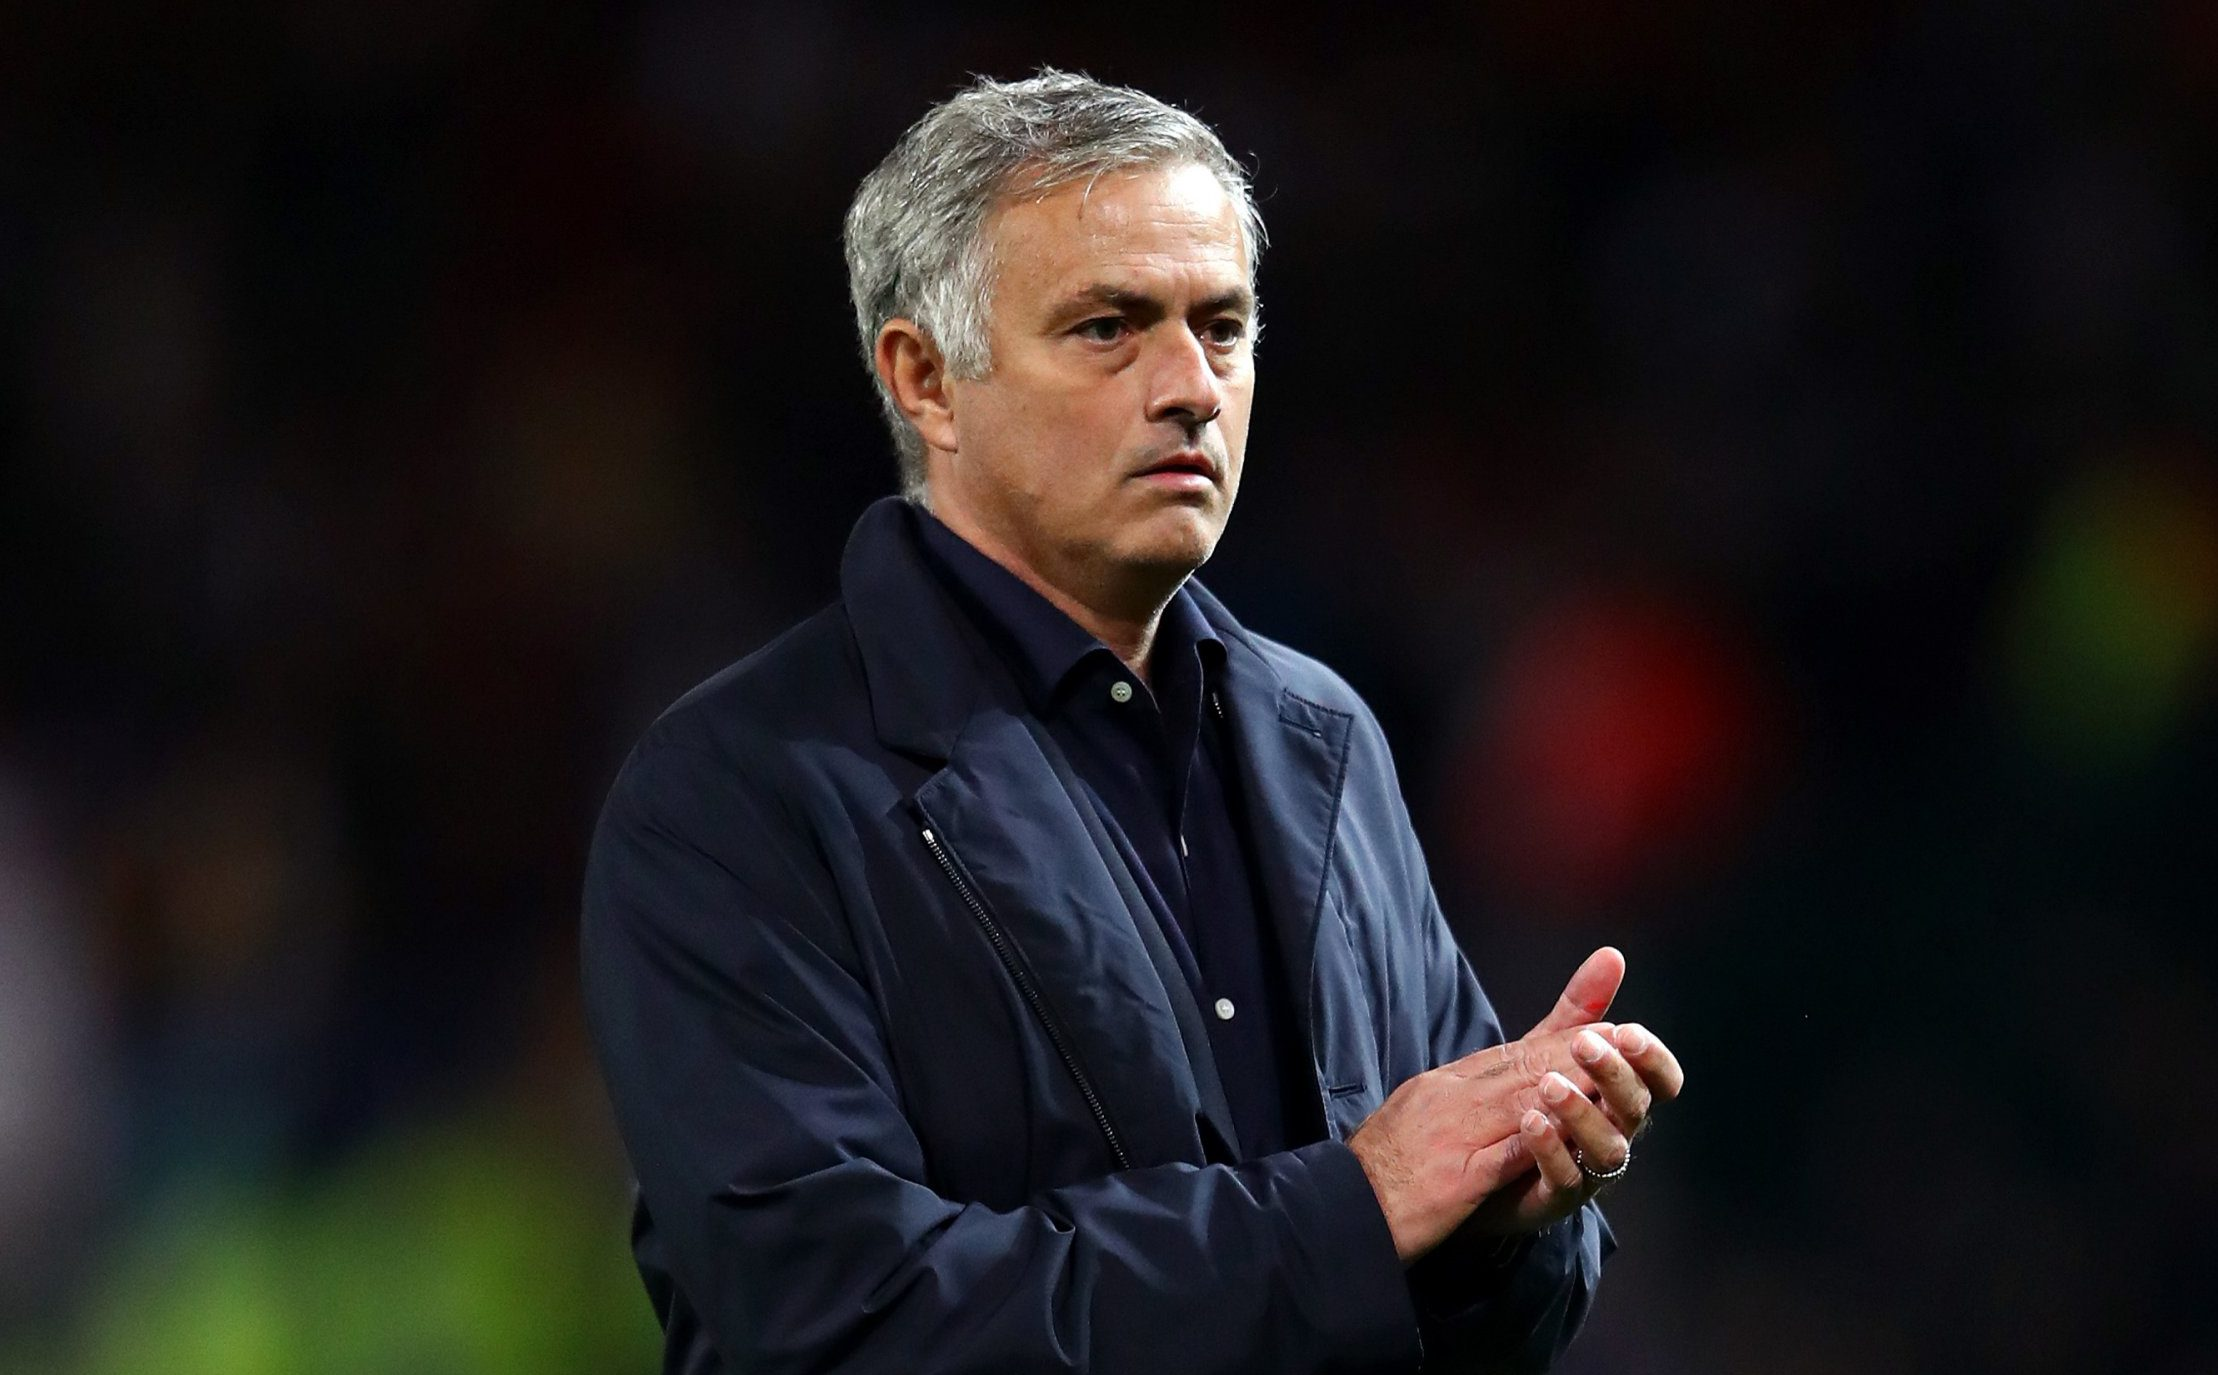 Jose Mourinho responds to Manchester United fans booing after Valencia draw